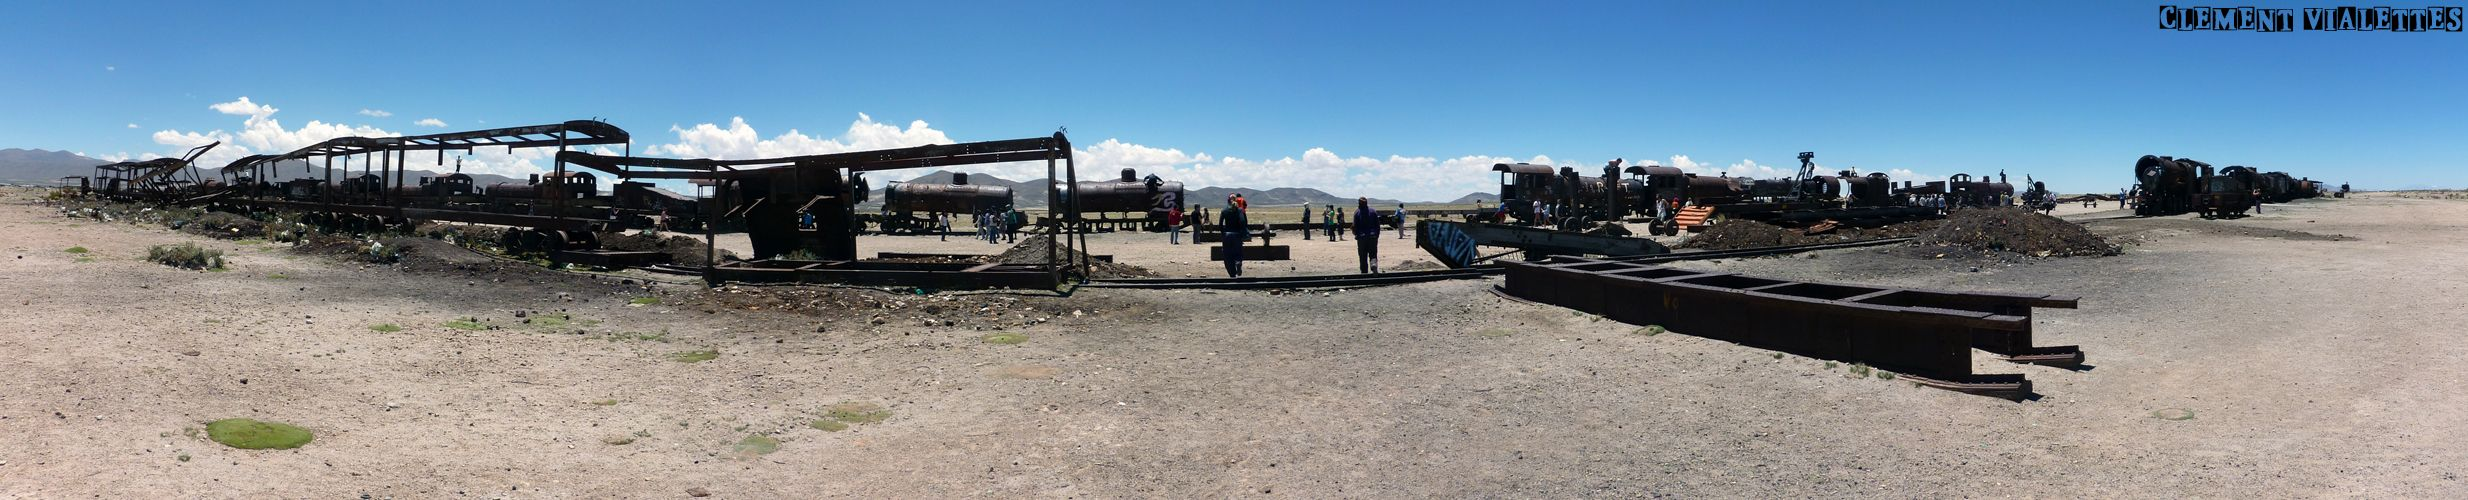 bolivie uyuni train panoramique